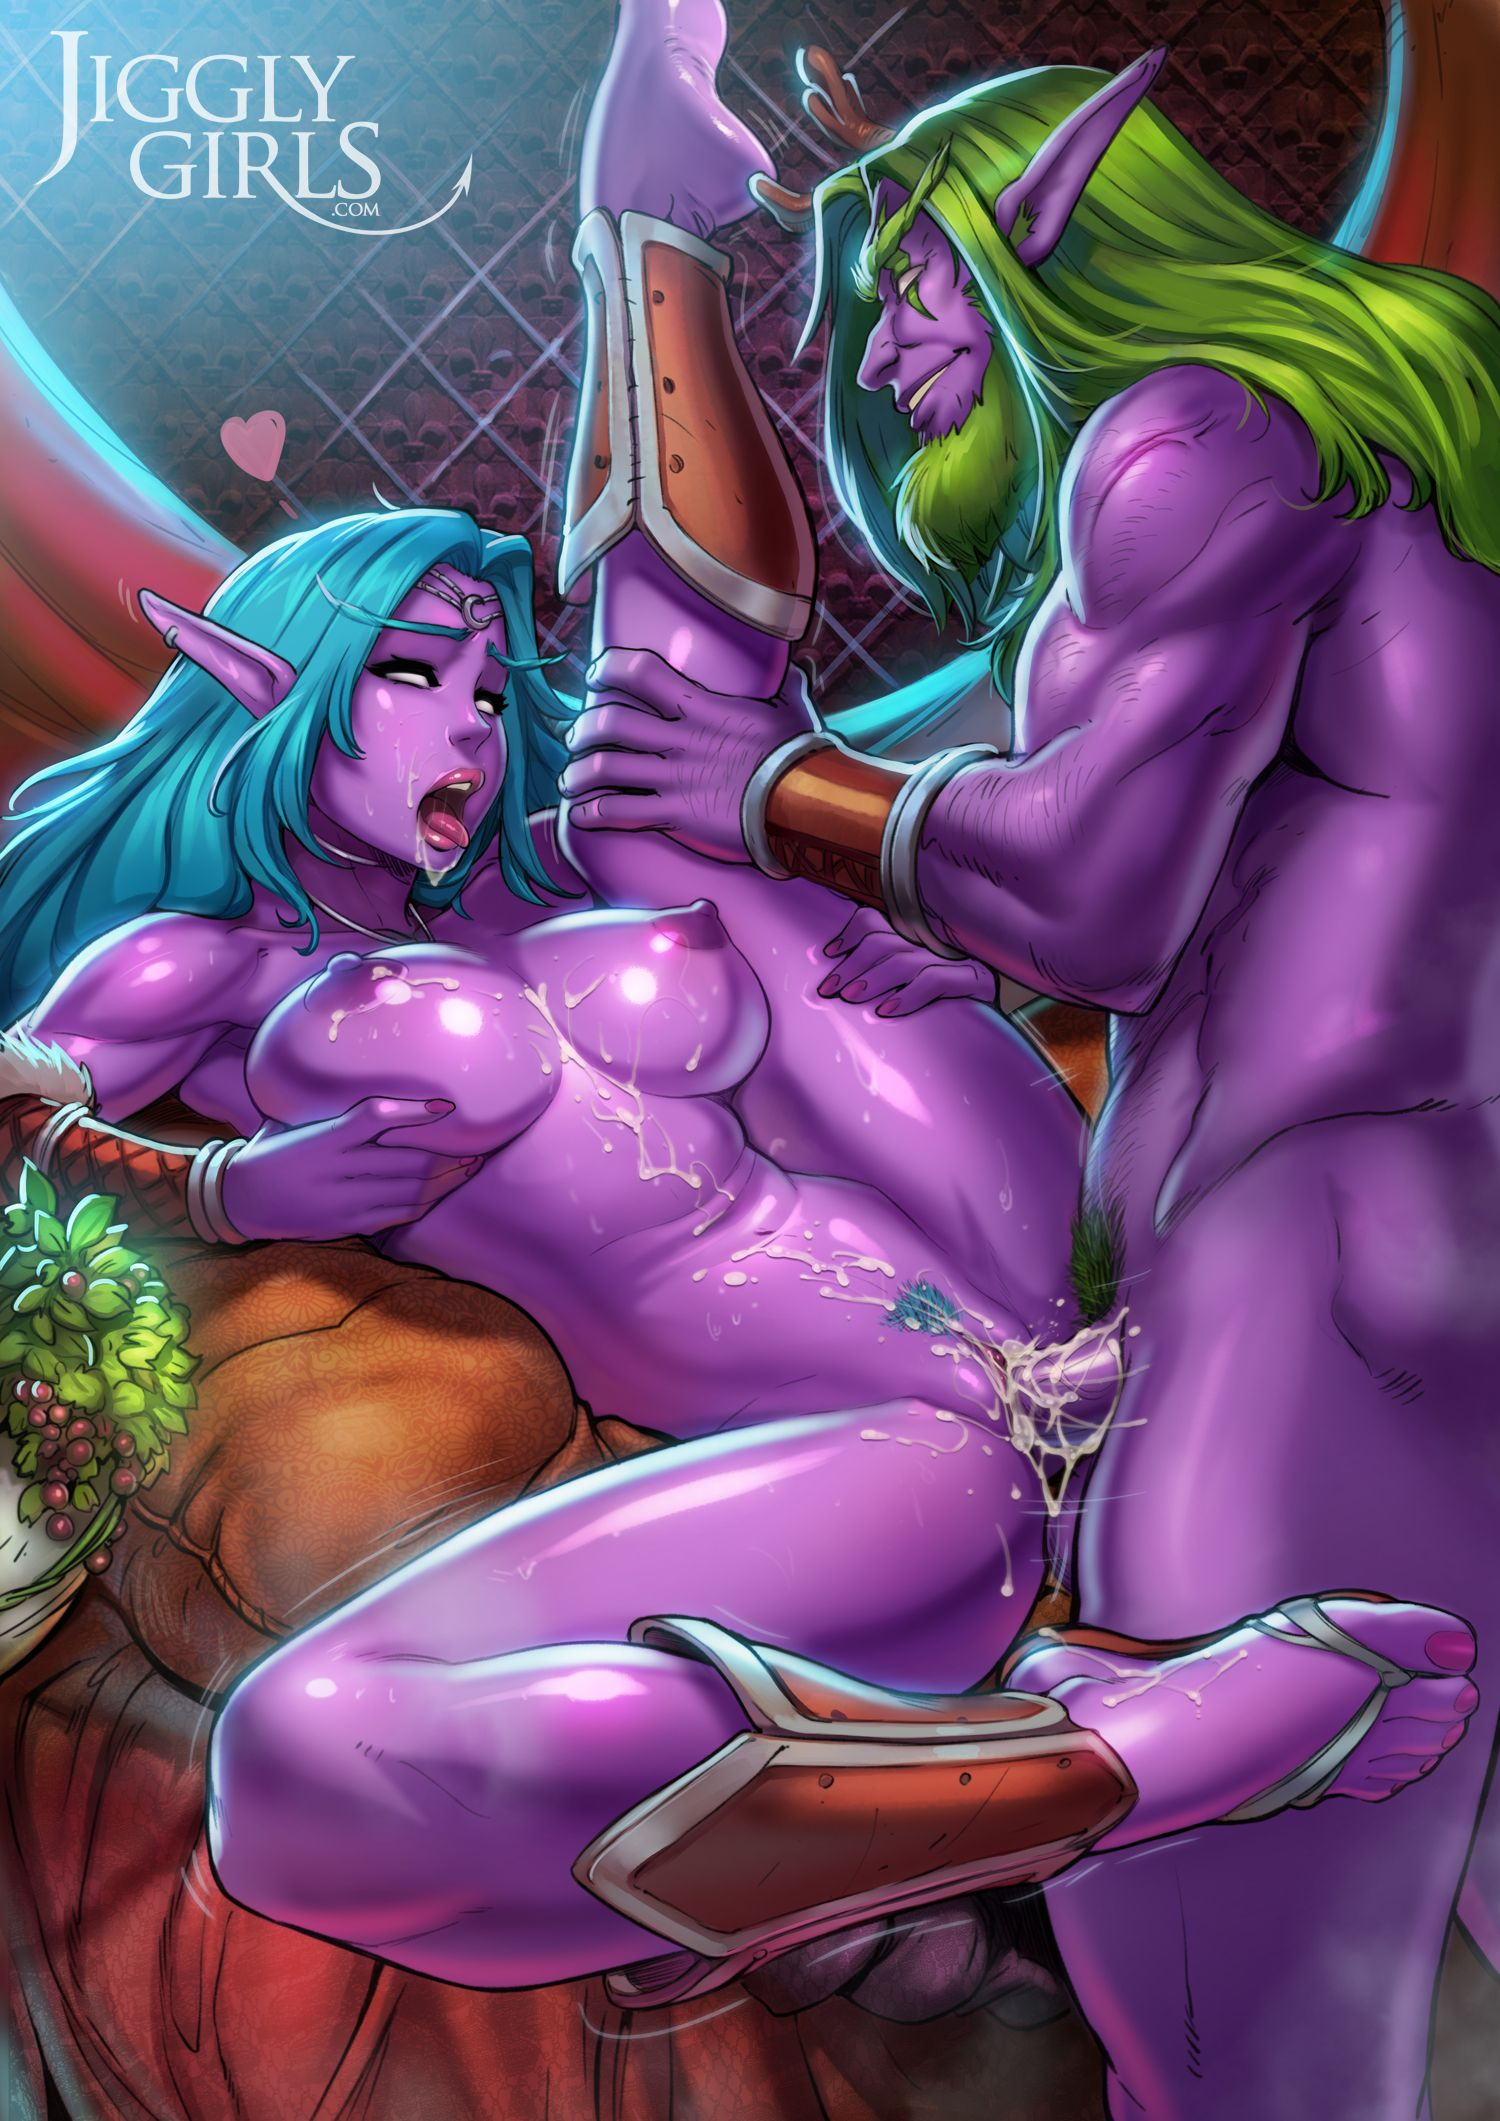 Maek up sex by world of warcraft hentai gallery